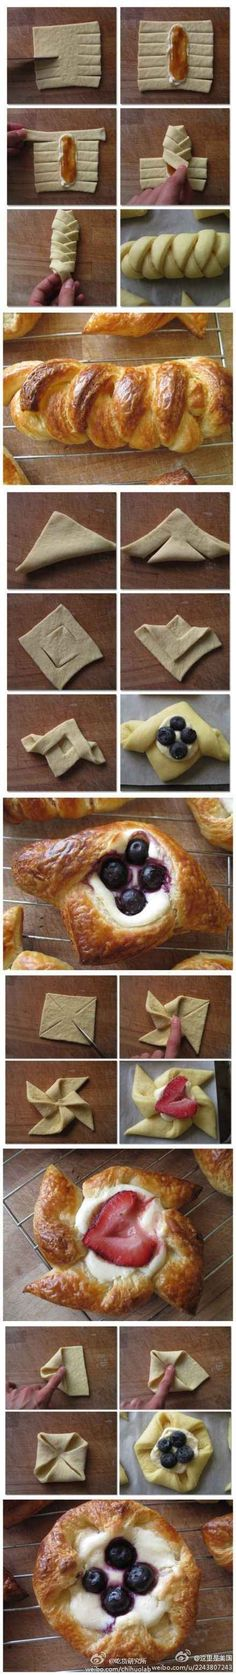 Pastry Folding Hacks | 40 Creative Food Hacks